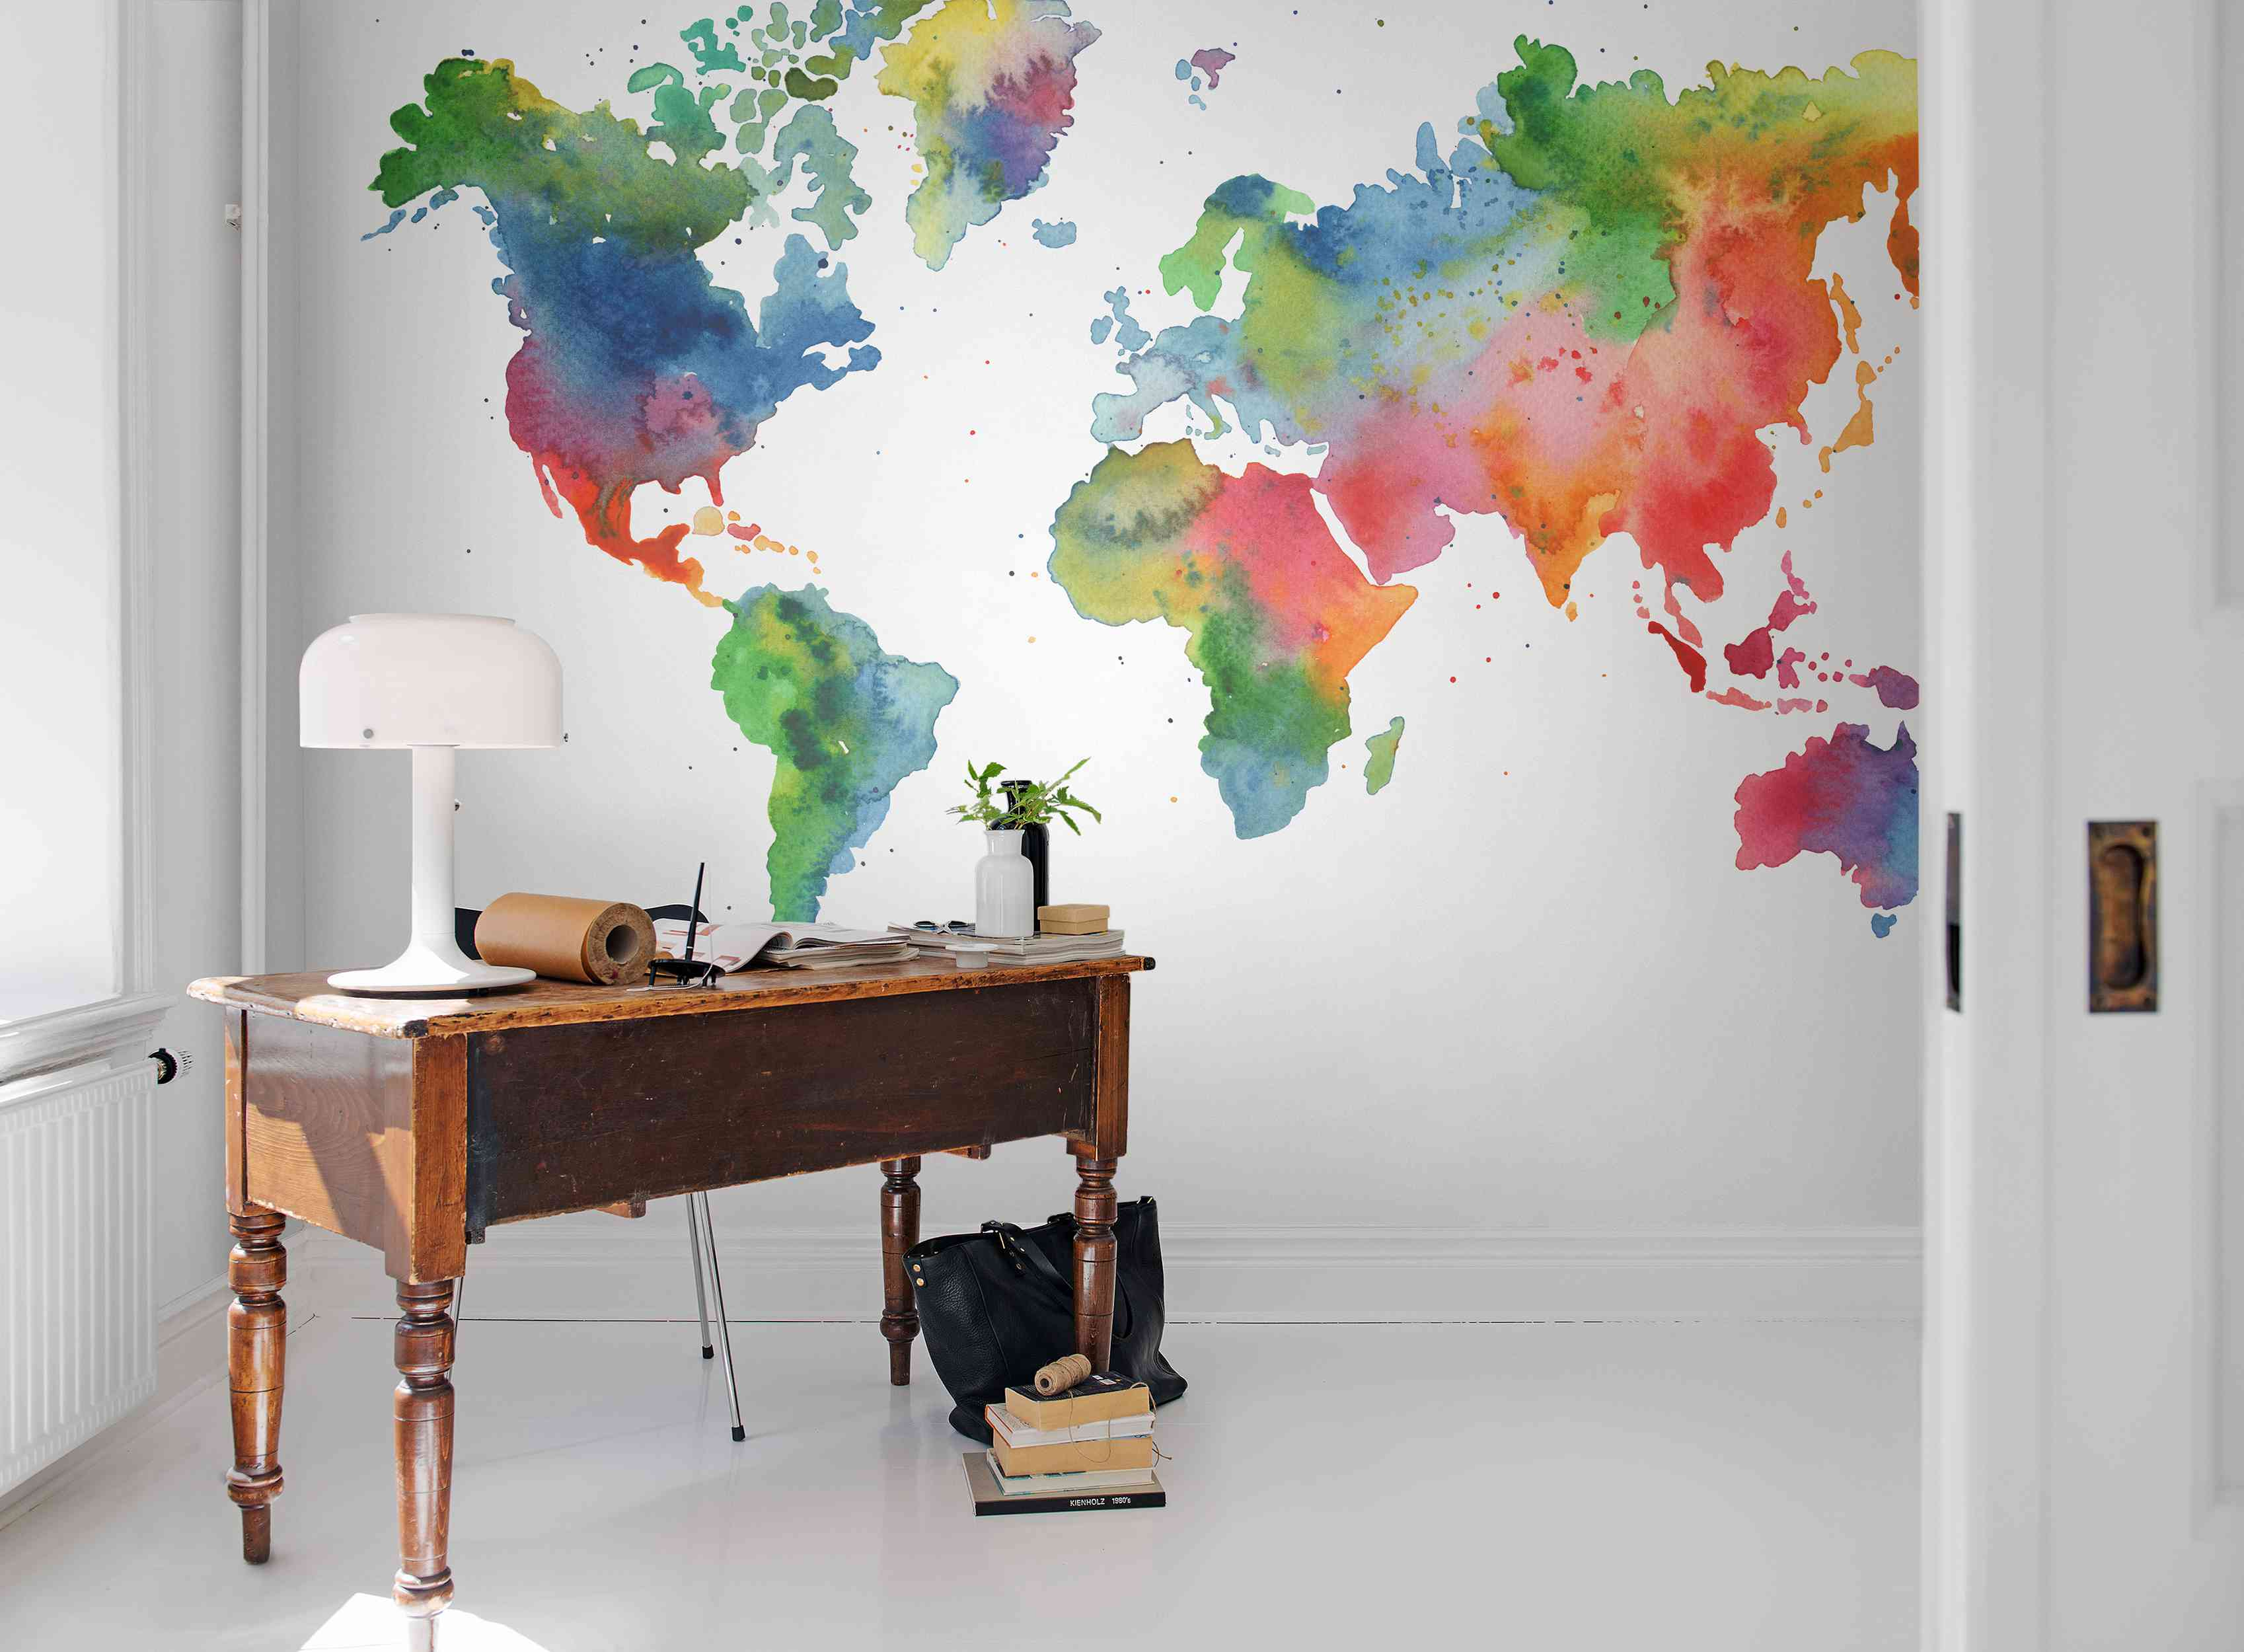 Rainbow colored world map wallpaper from Rebel Walls.